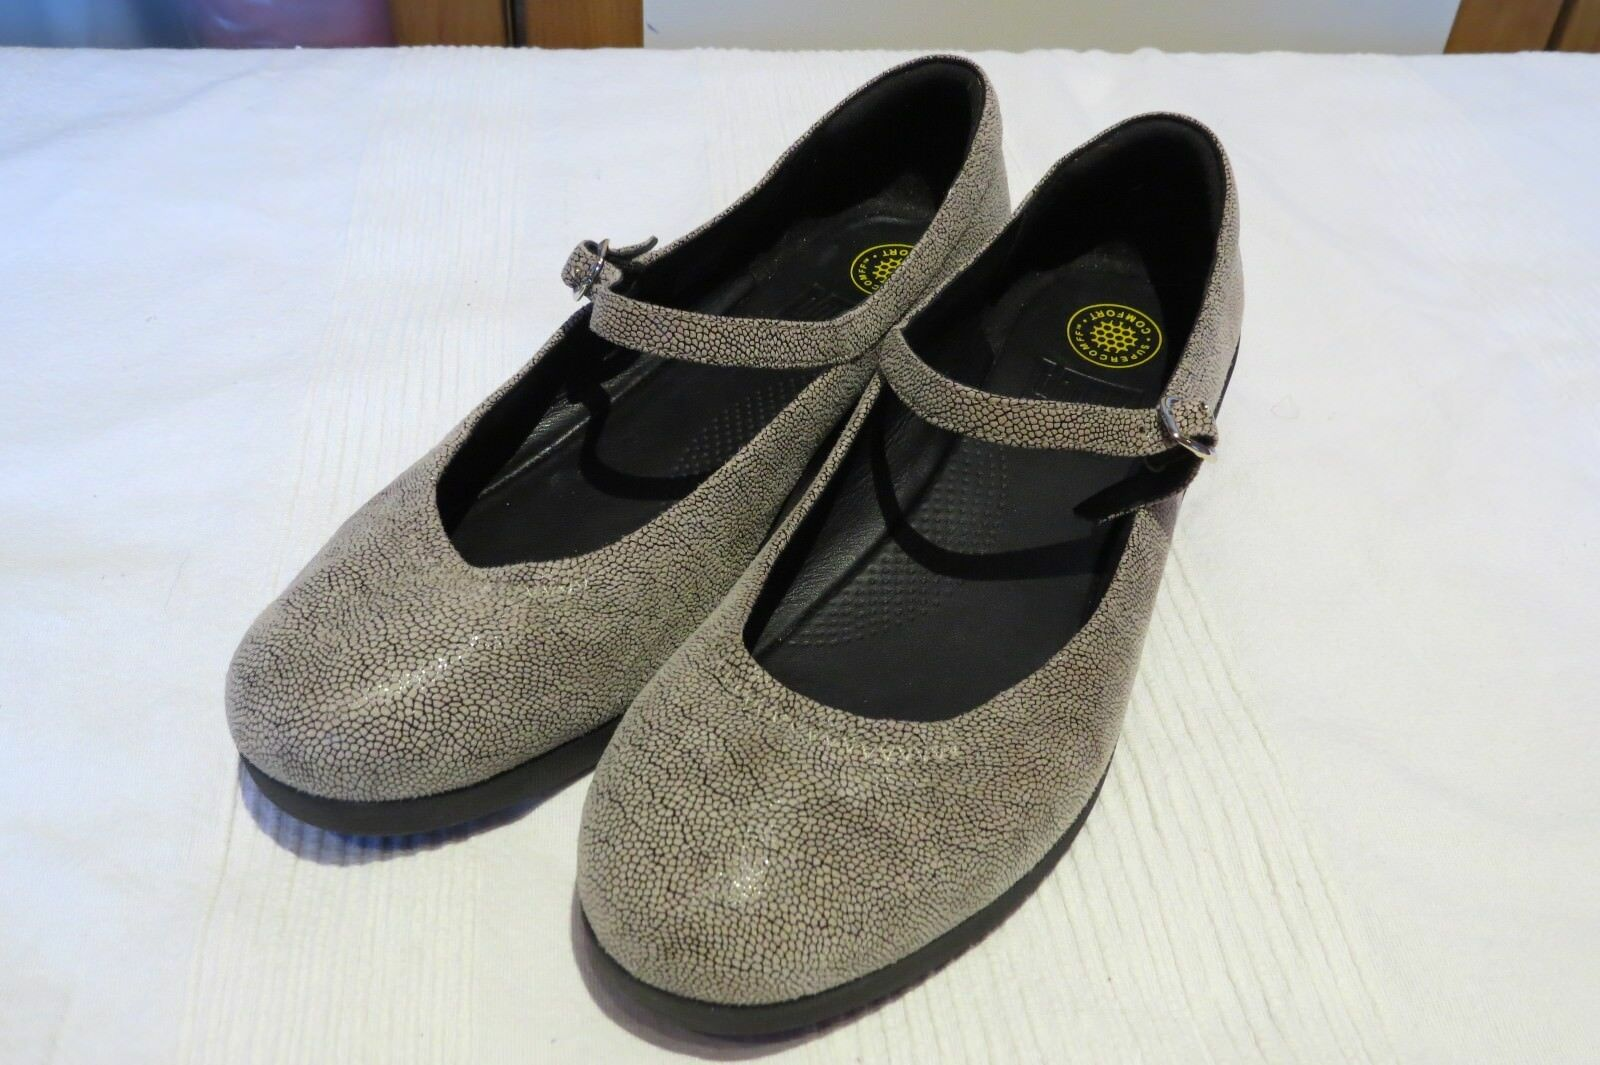 FitFlop™ F-POP STONE PEBBLEPRINT 6.5 MARY JANE Schuhe UK 6.5 PEBBLEPRINT EUR 40 USA 8.5 a79674